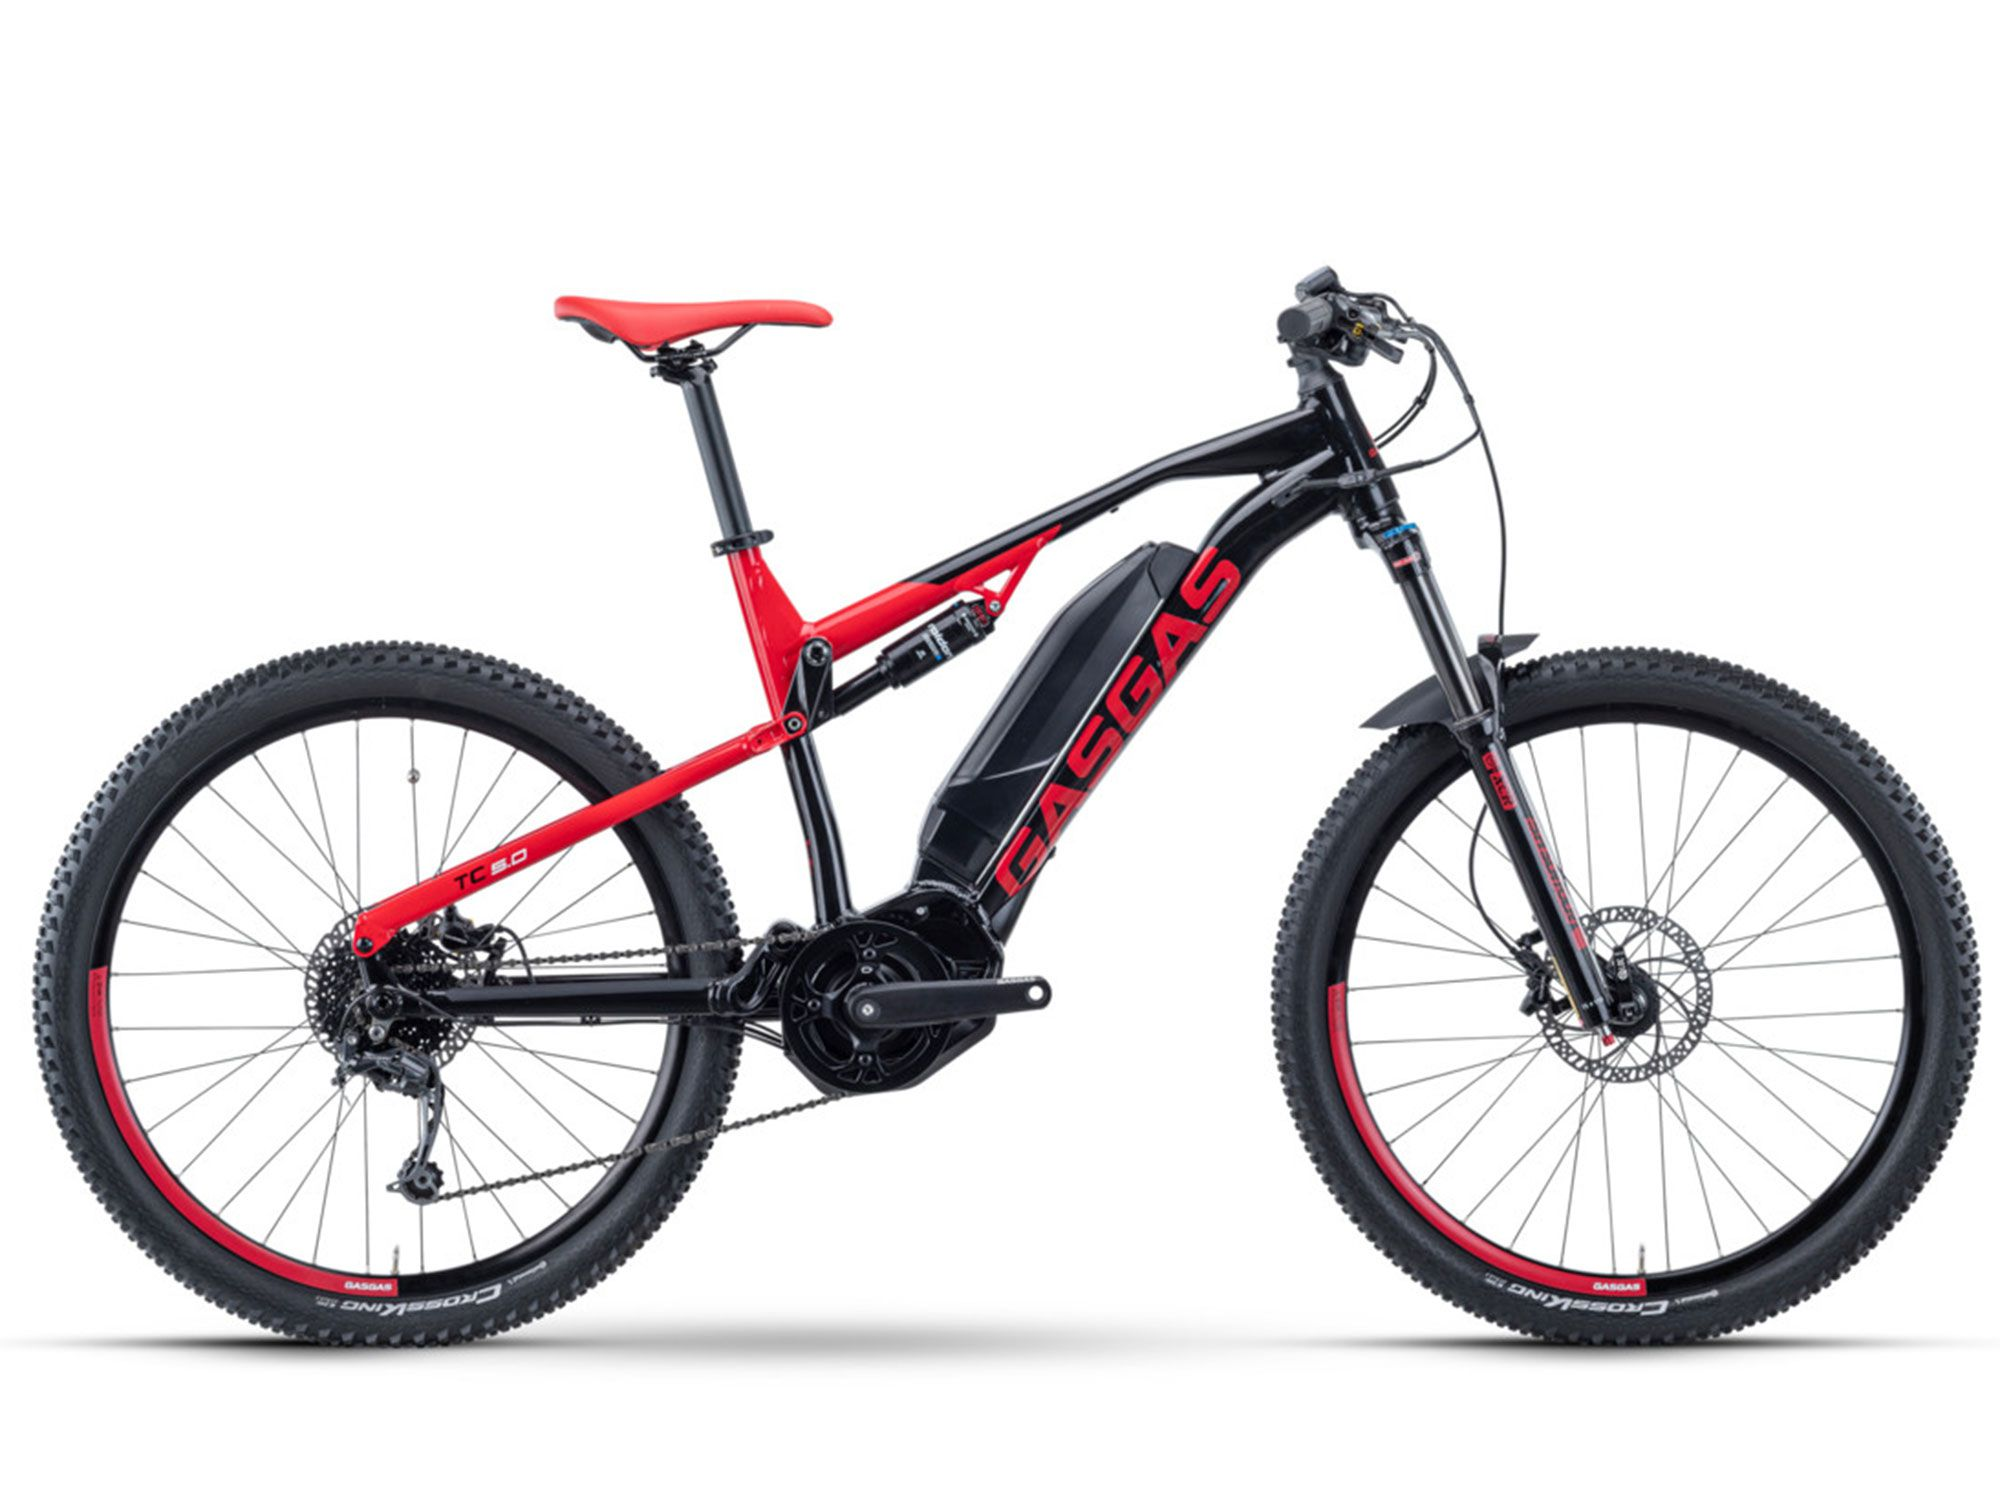 The Trail Cross 5.0 is an affordable all-rounder.